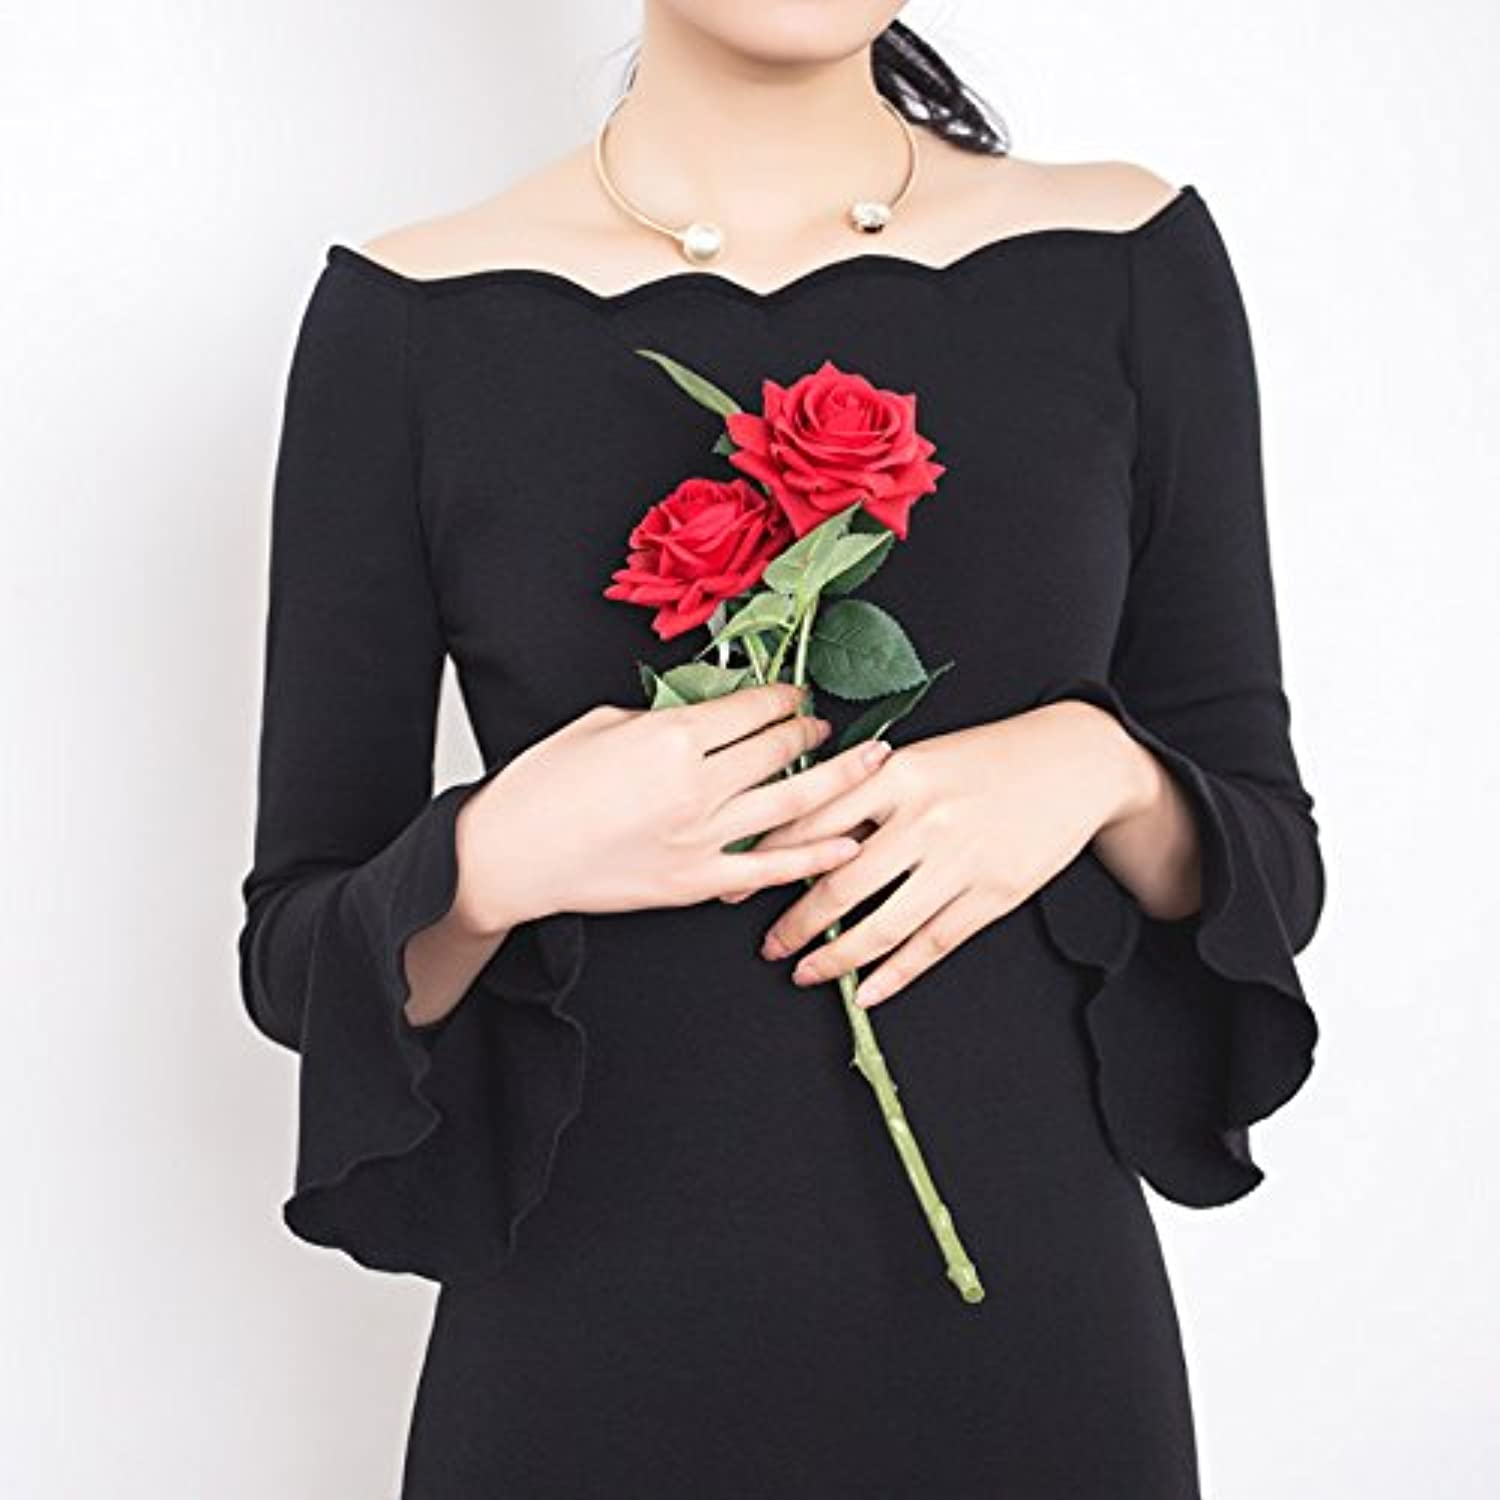 GAOLIM Autumn Collar Led The Wave Package Hip Dress Skirt 1874 Long Sleeves, L, Black Now